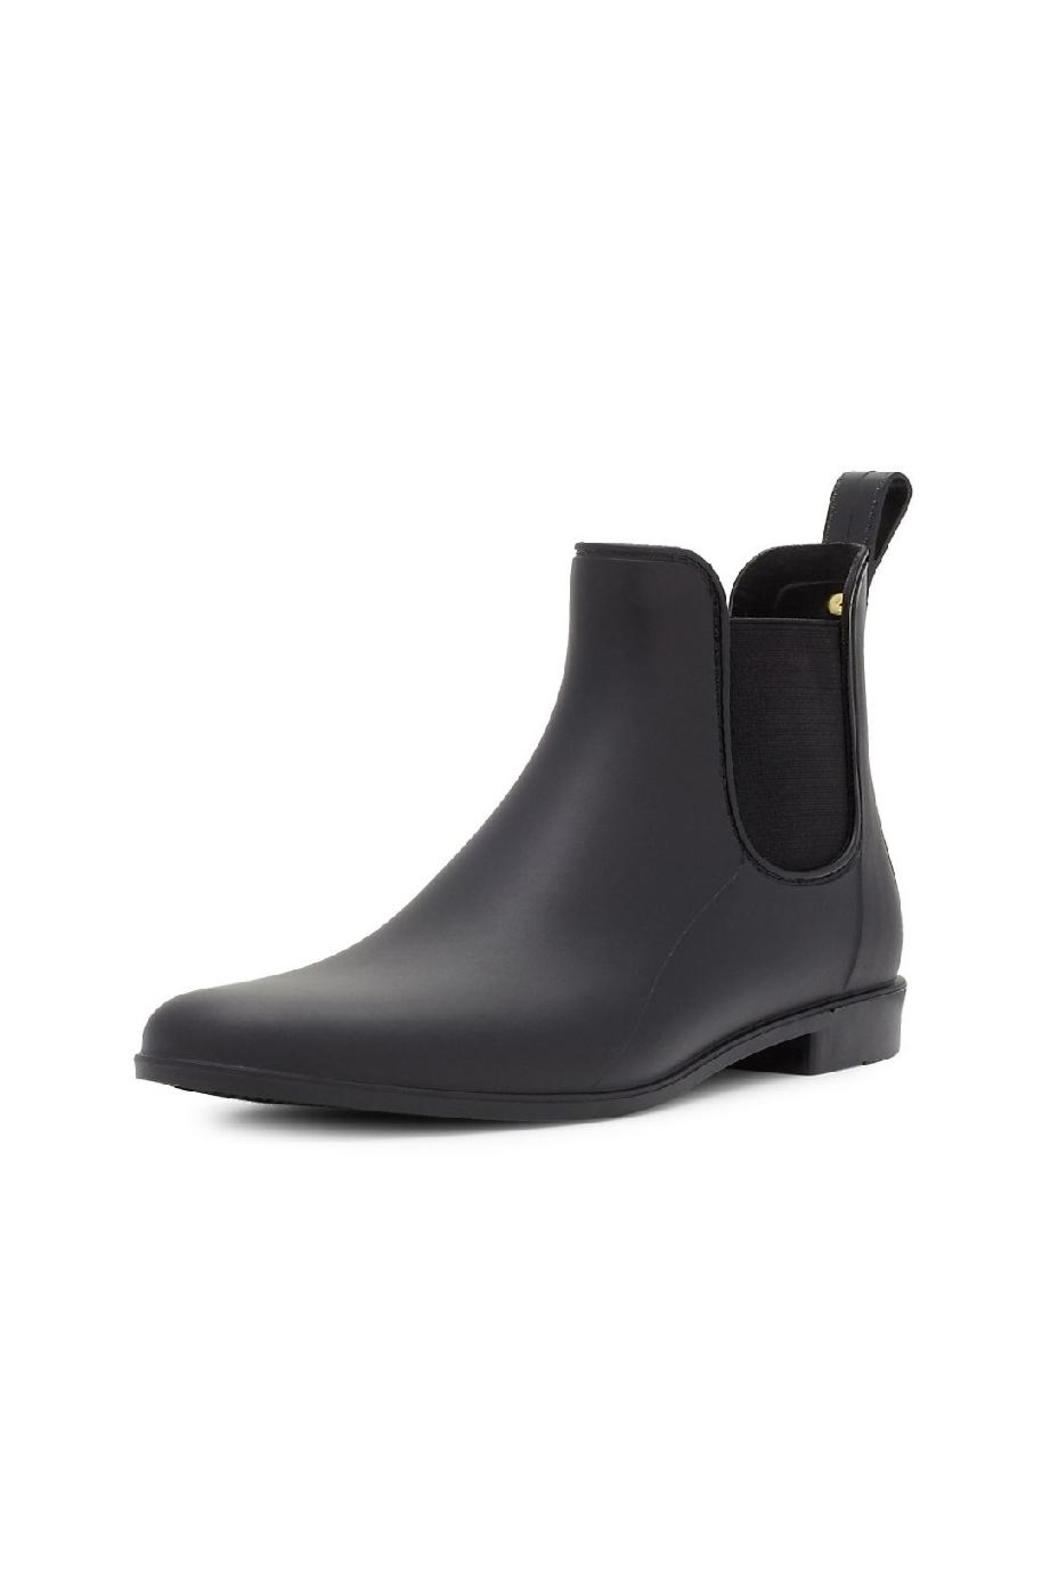 7582e8afb89 Sam Edelman Tinsley Matte Rubber Rain Boot from Hudson Valley by ...